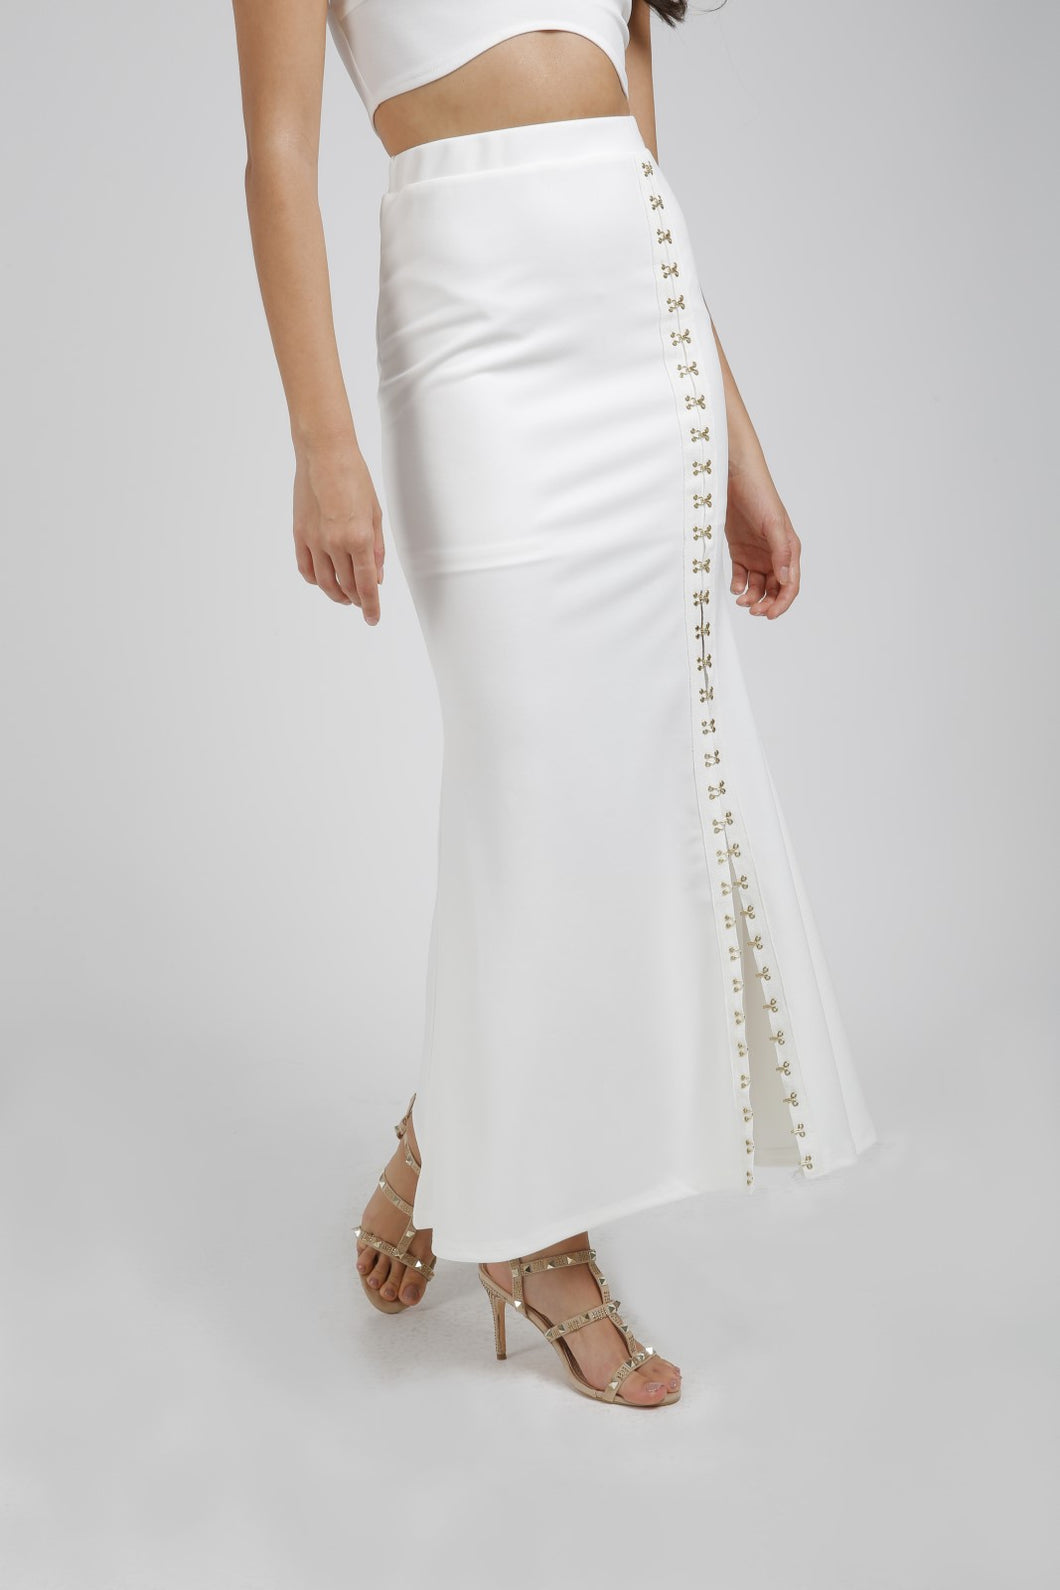 White Flared Maxi Skirt With Hook And Eye Detail